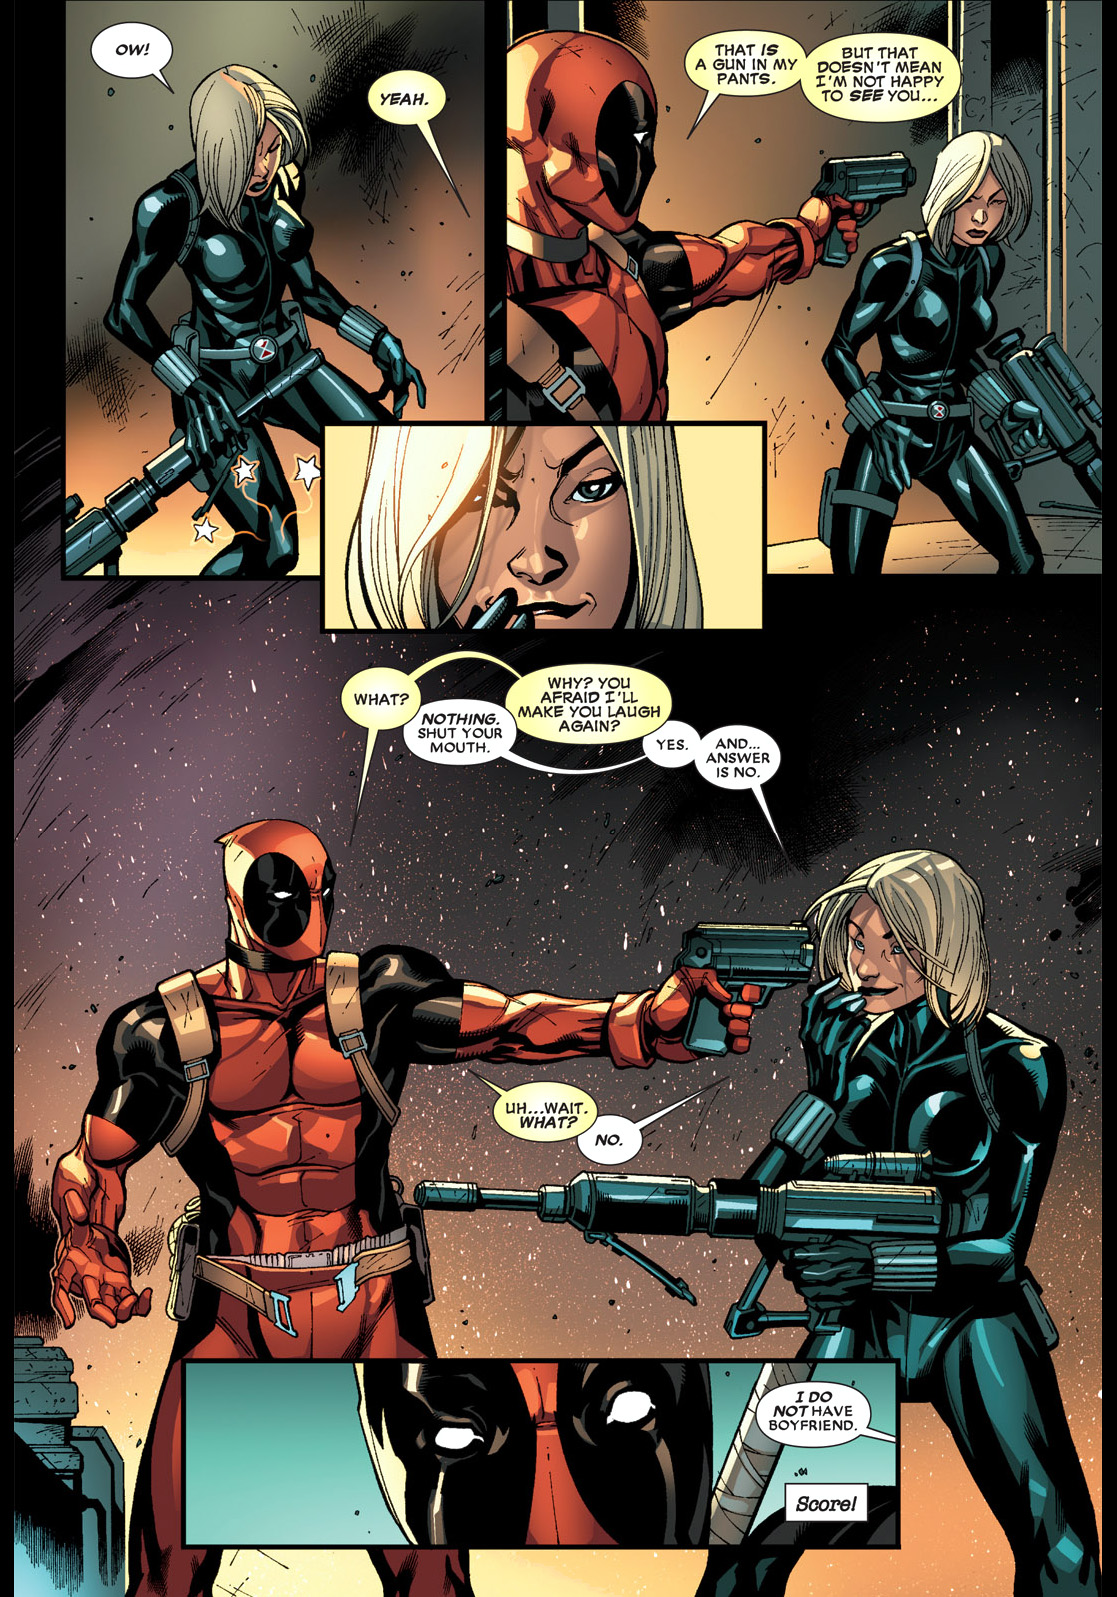 deadpool flirts with black widow